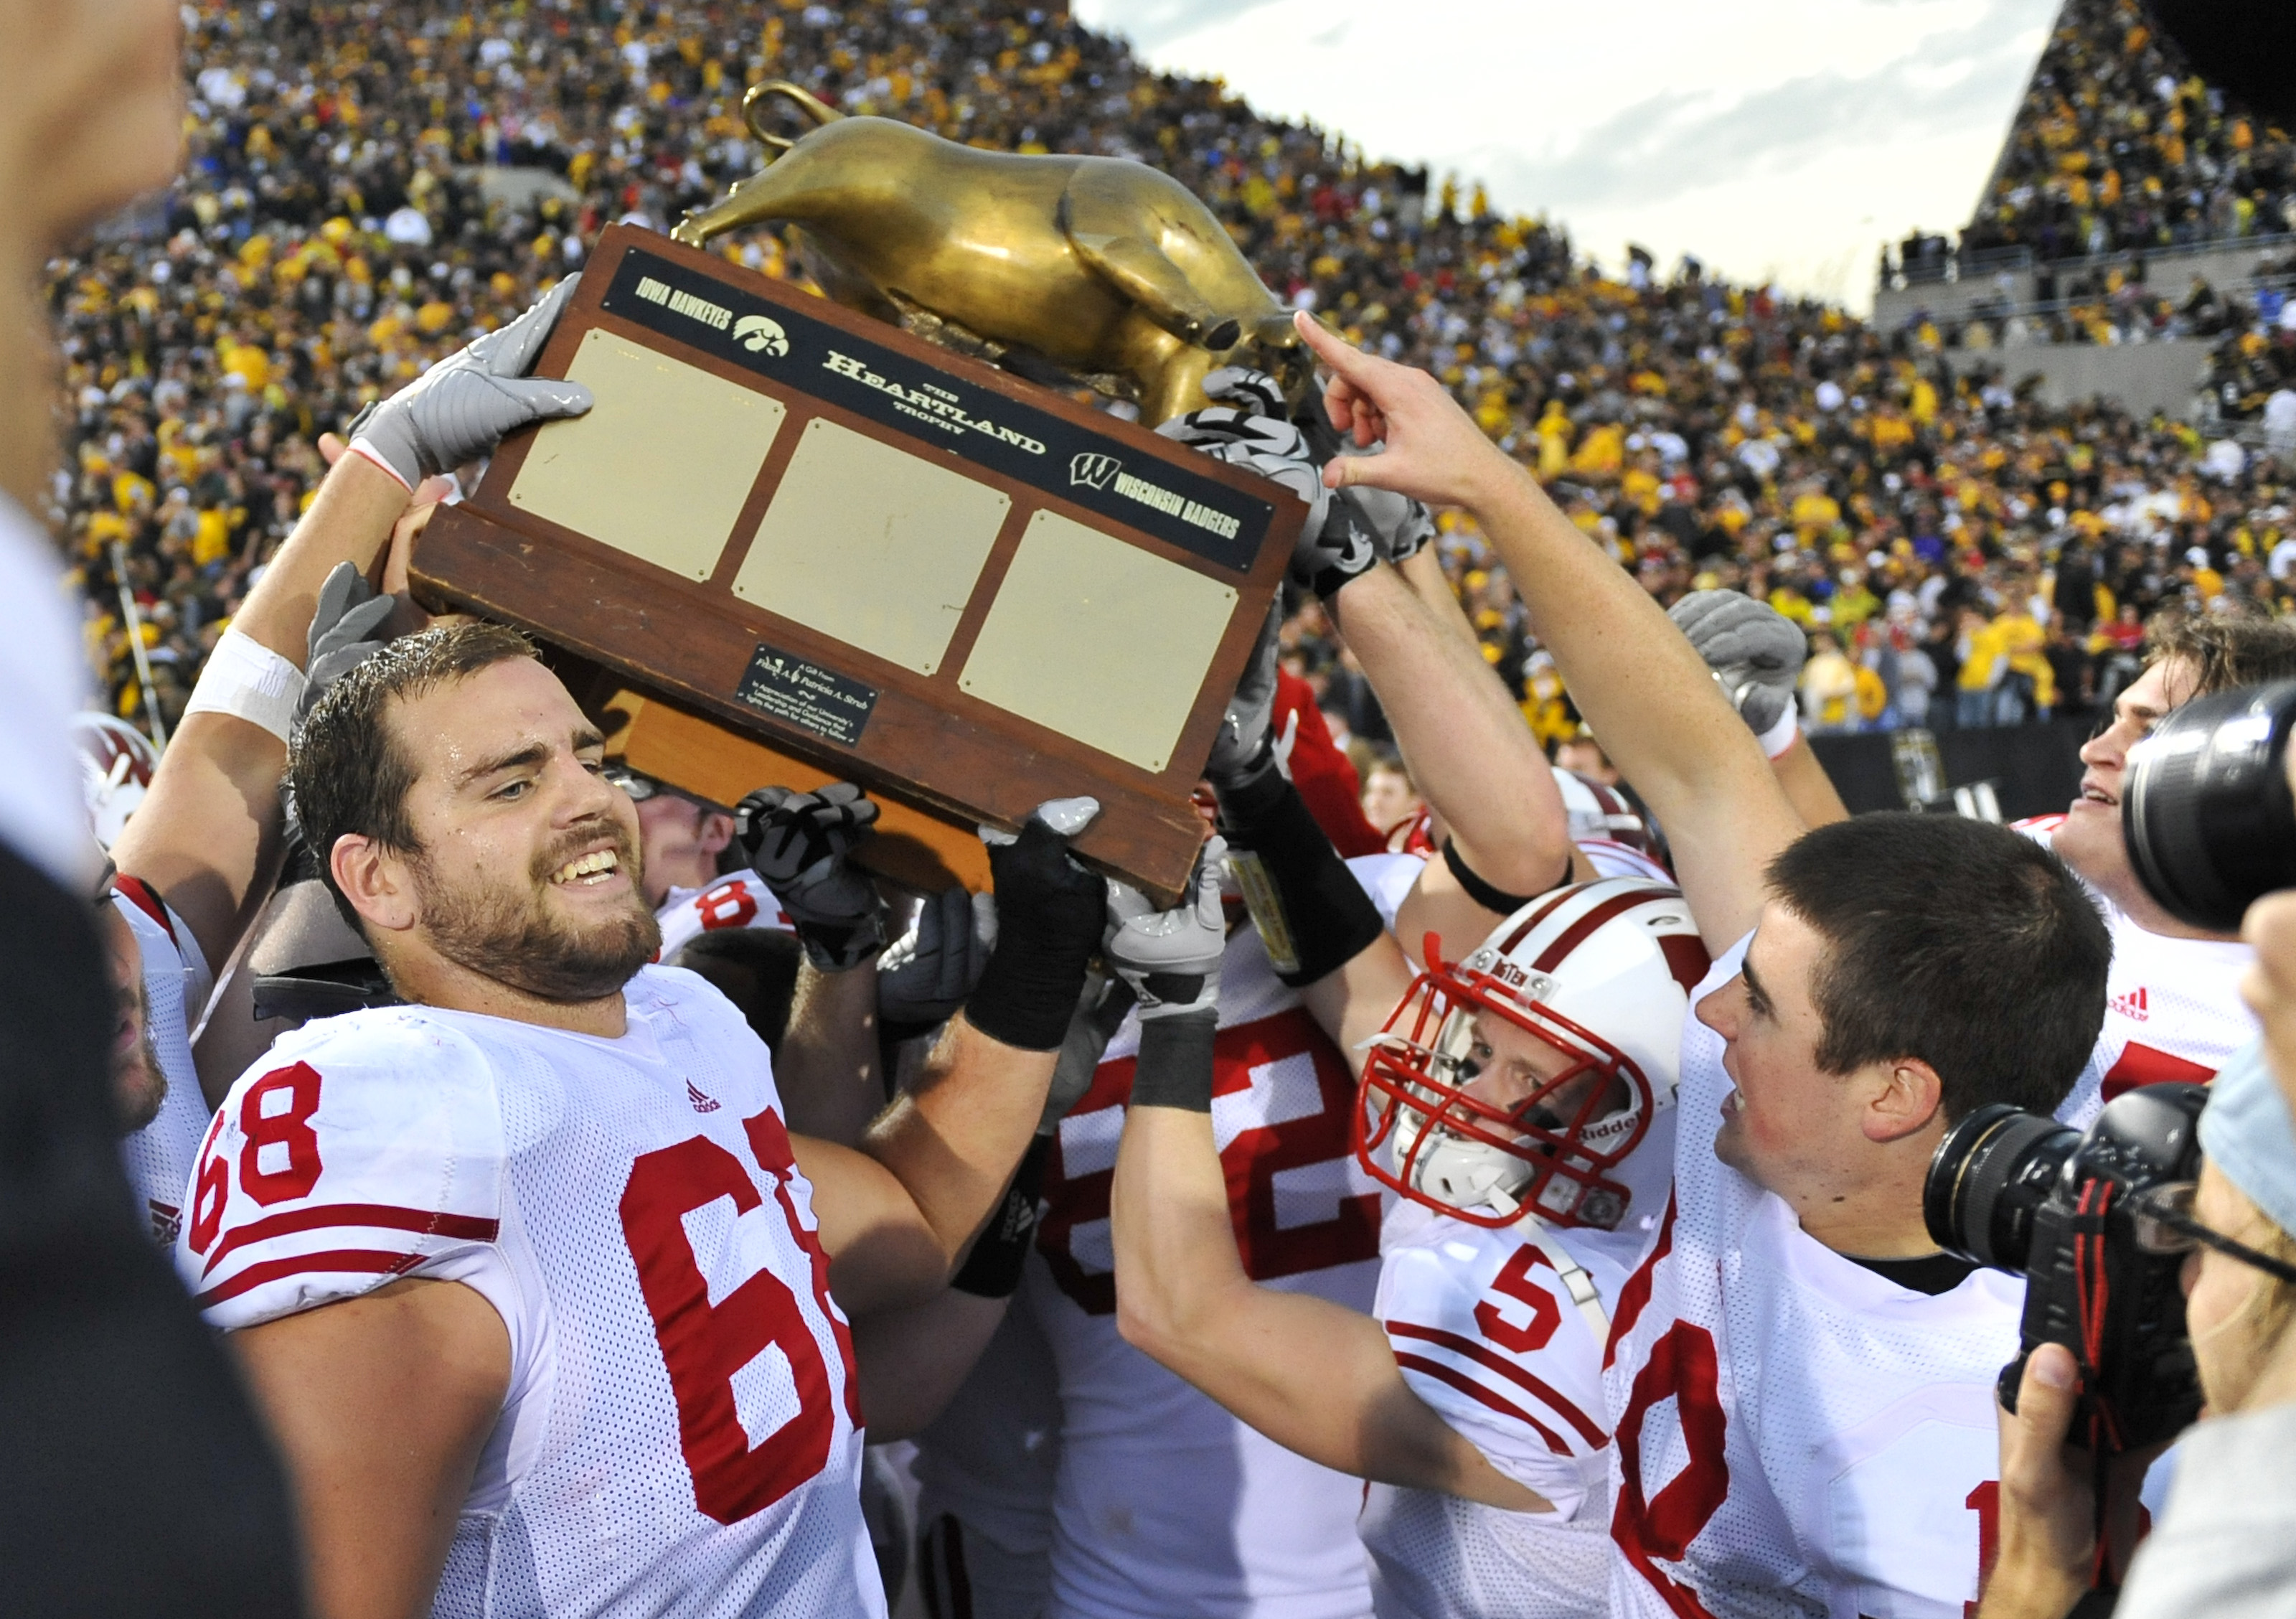 IOWA CITY, IA - OCTOBER 23: Offensive lineman Gabe Carimi #68 of the Wisconsin Badgers holds the Heartland Trophy with his teammates as they celebrate their victory of the University of Iowa Hawkeyes at Kinnick Stadium on October 23, 2010 in Iowa City, Io